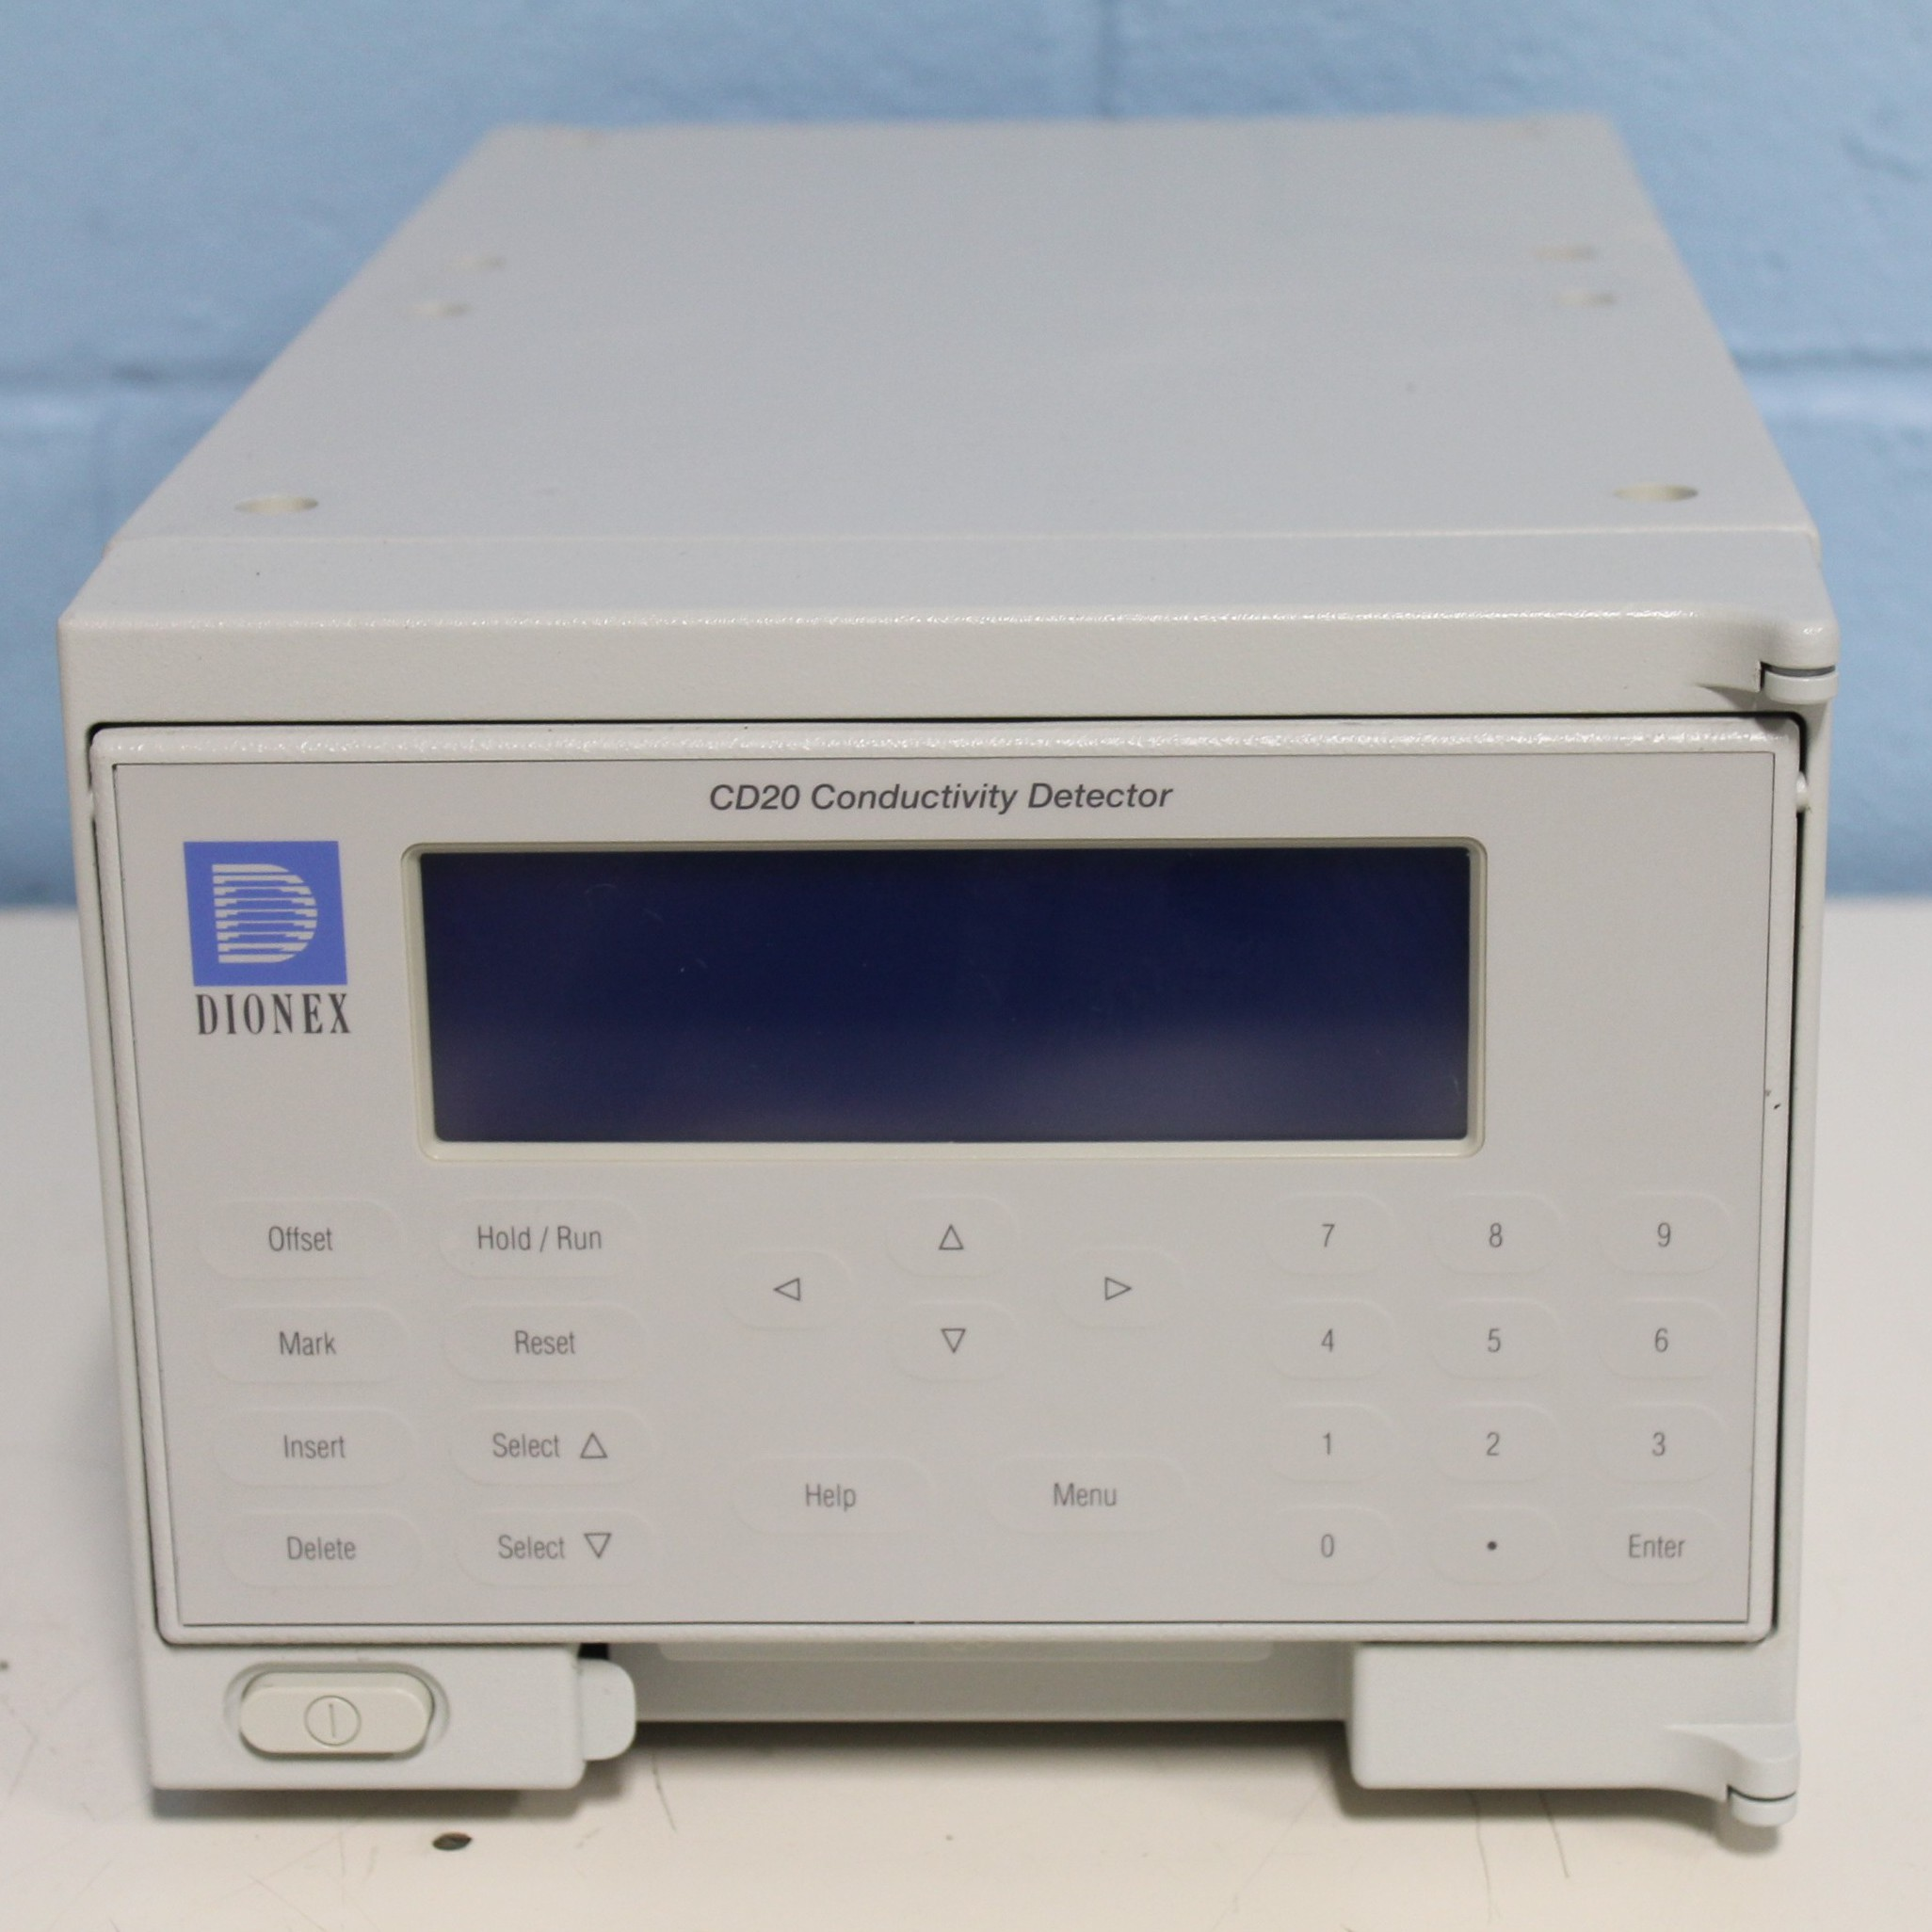 CD20 Conductivity Detector Name